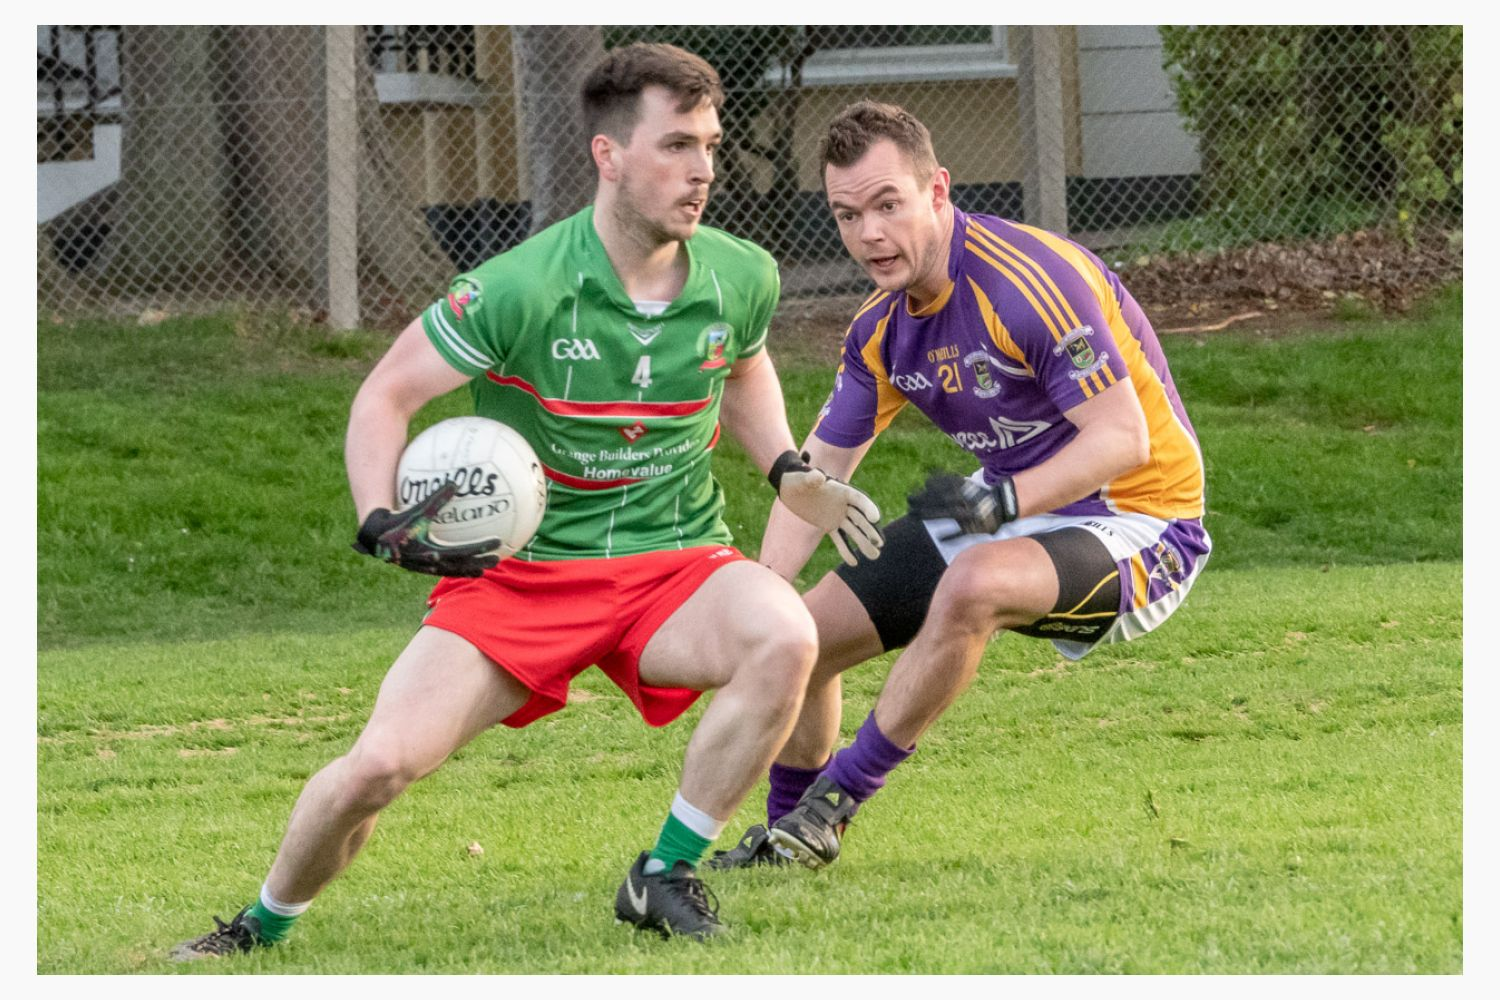 Collection of Photo's from League Fixtures AFL1 V Thomas Davis & AFL3 V Naomh Barrog